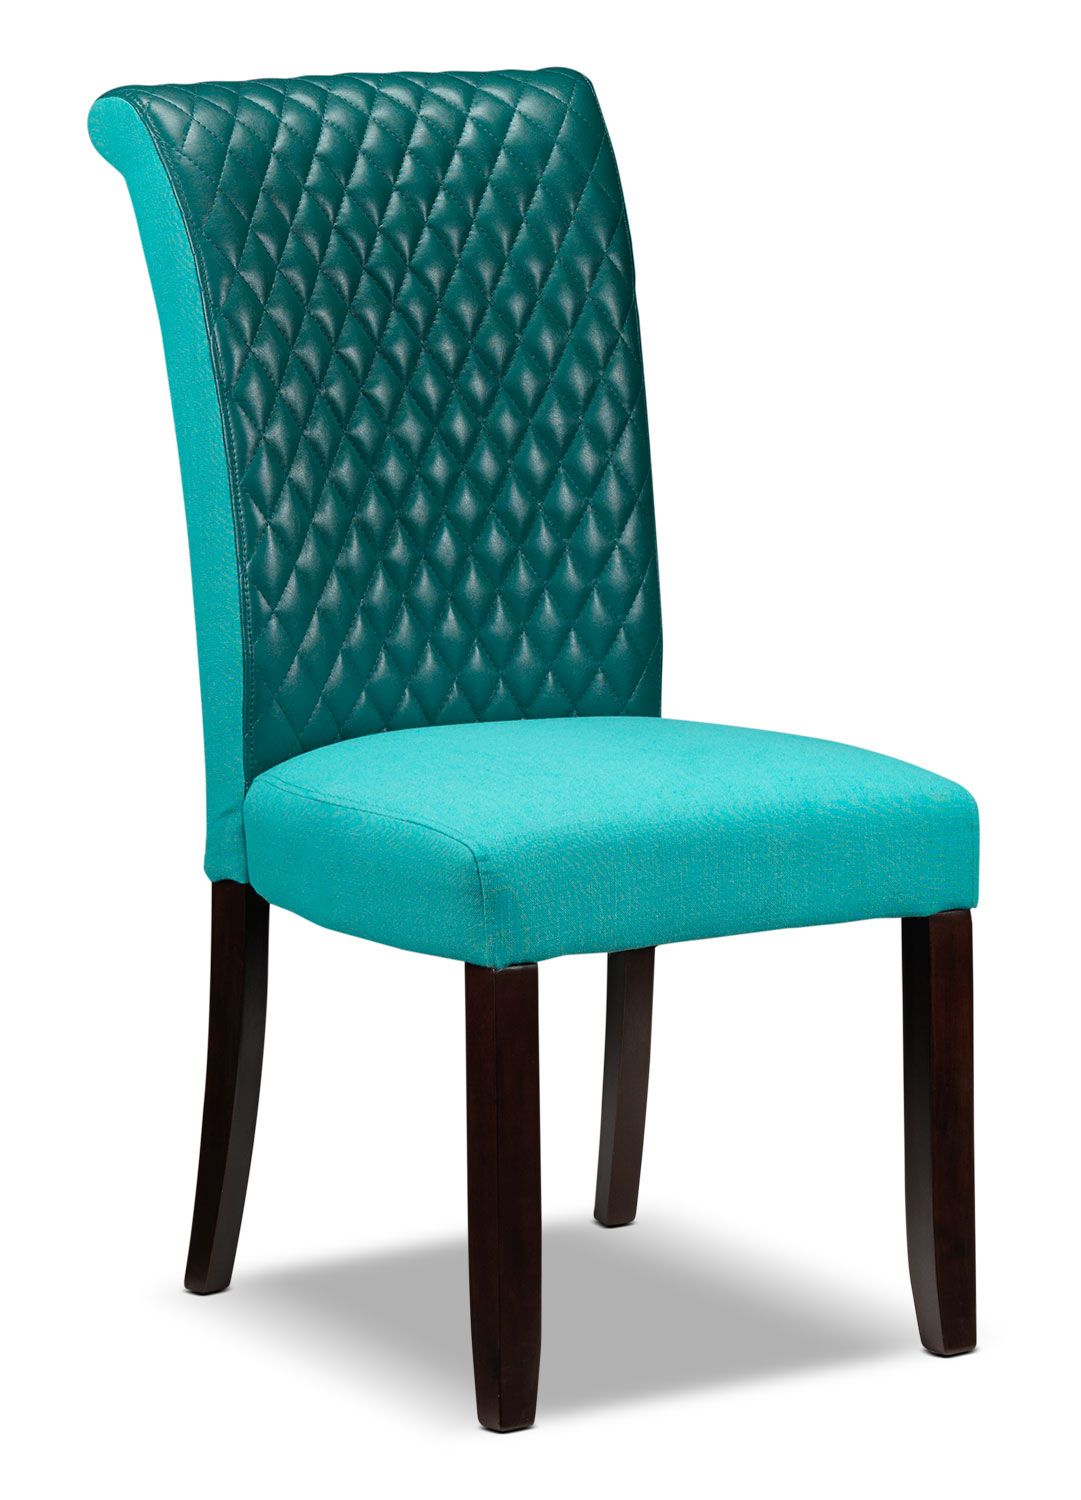 arms dark teal arm p fabric ch stanford chair classic rolled design